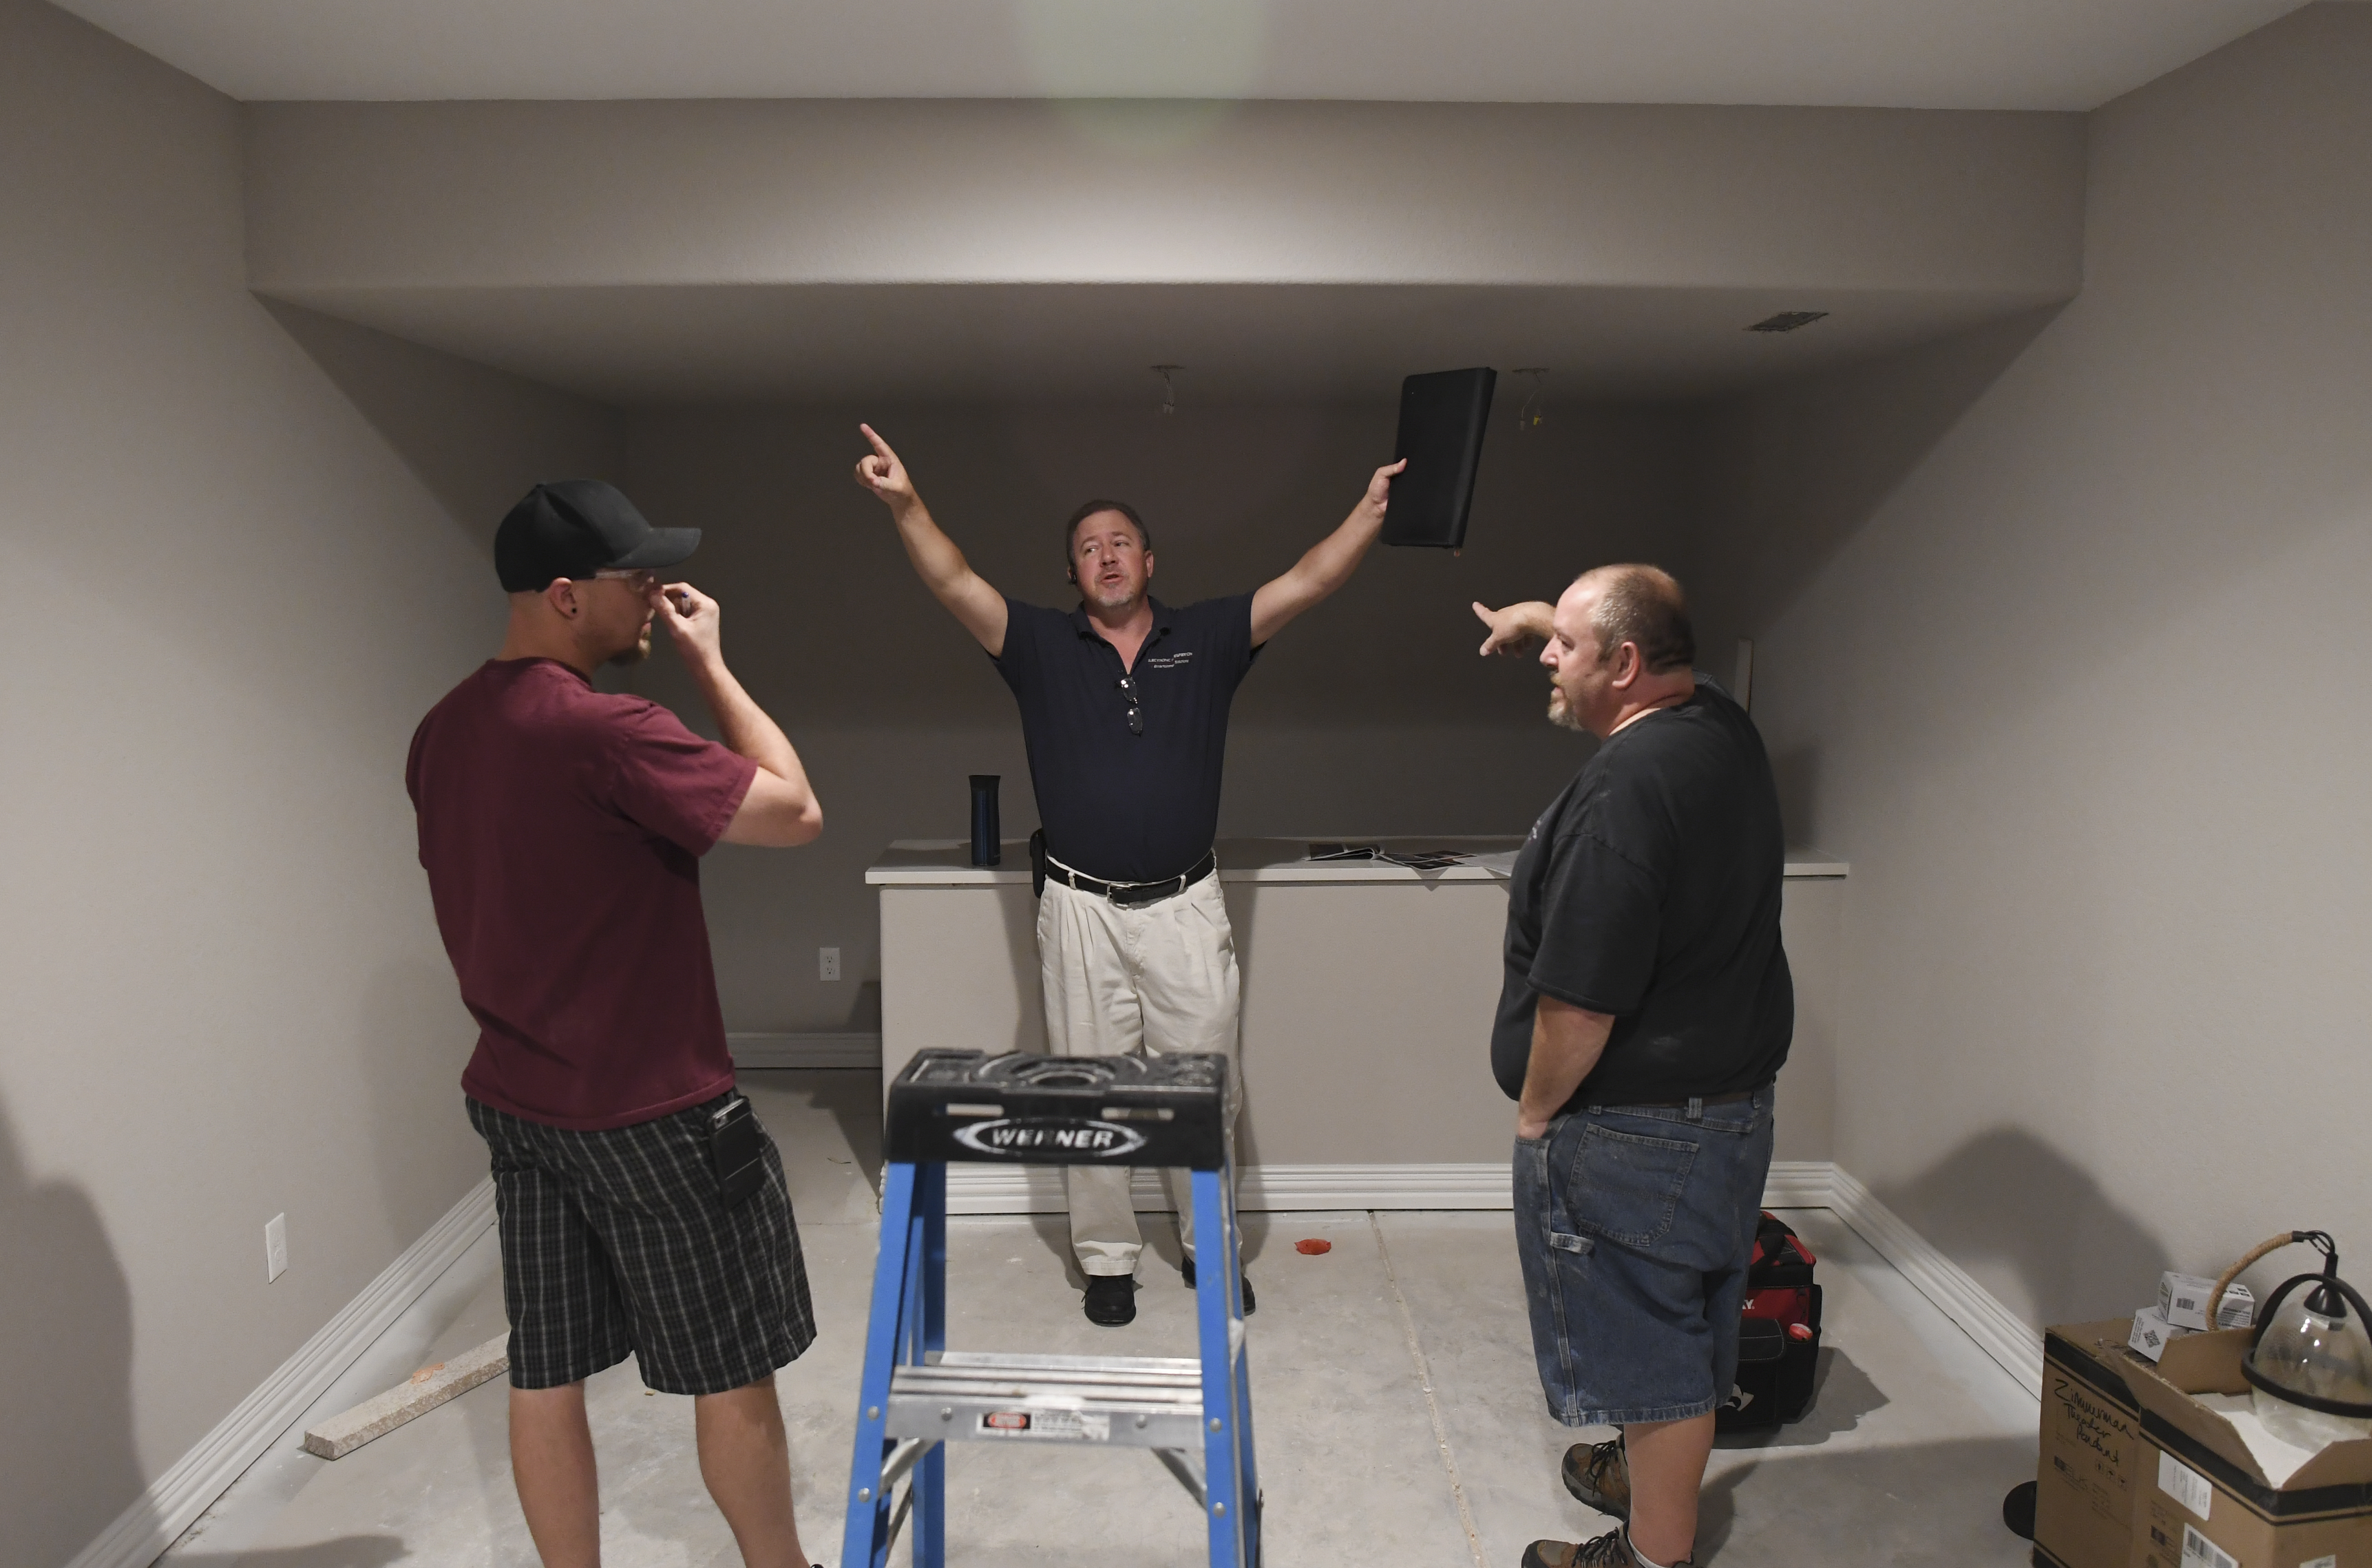 Colorado homeowners can get the biggest bang for their home-improvement buck with these projects